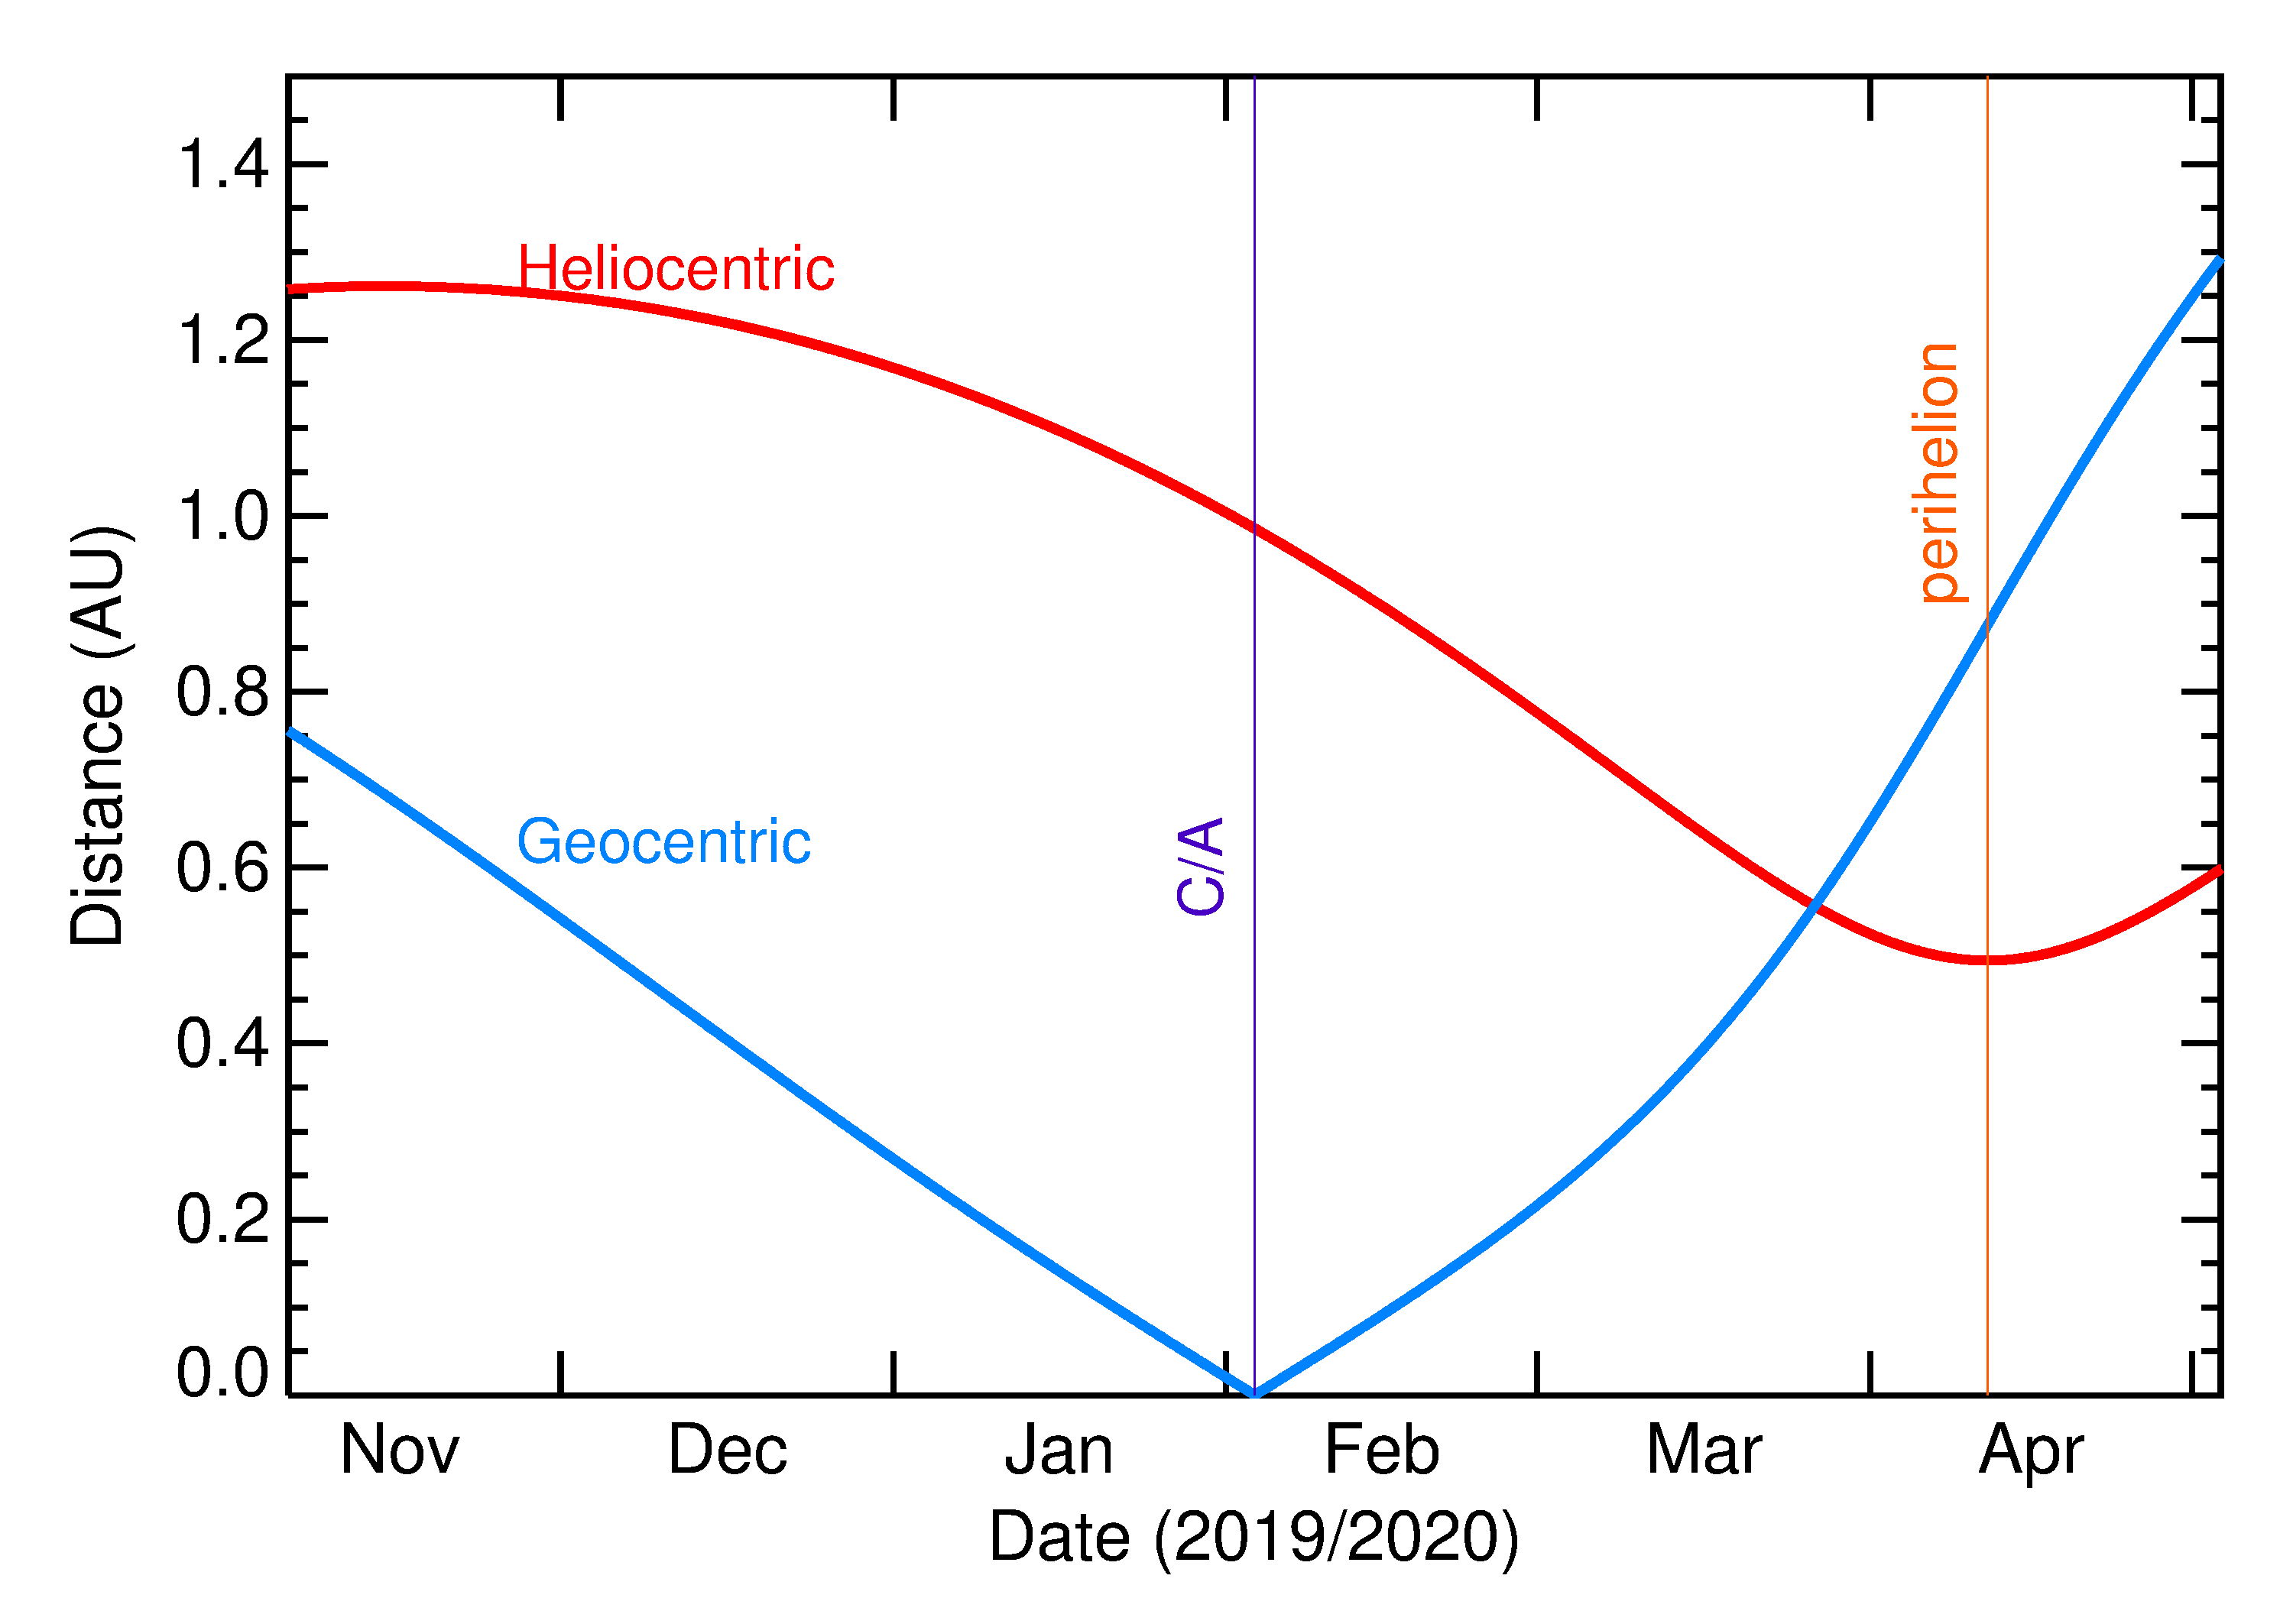 Heliocentric and Geocentric Distances of 2020 CA in the months around closest approach